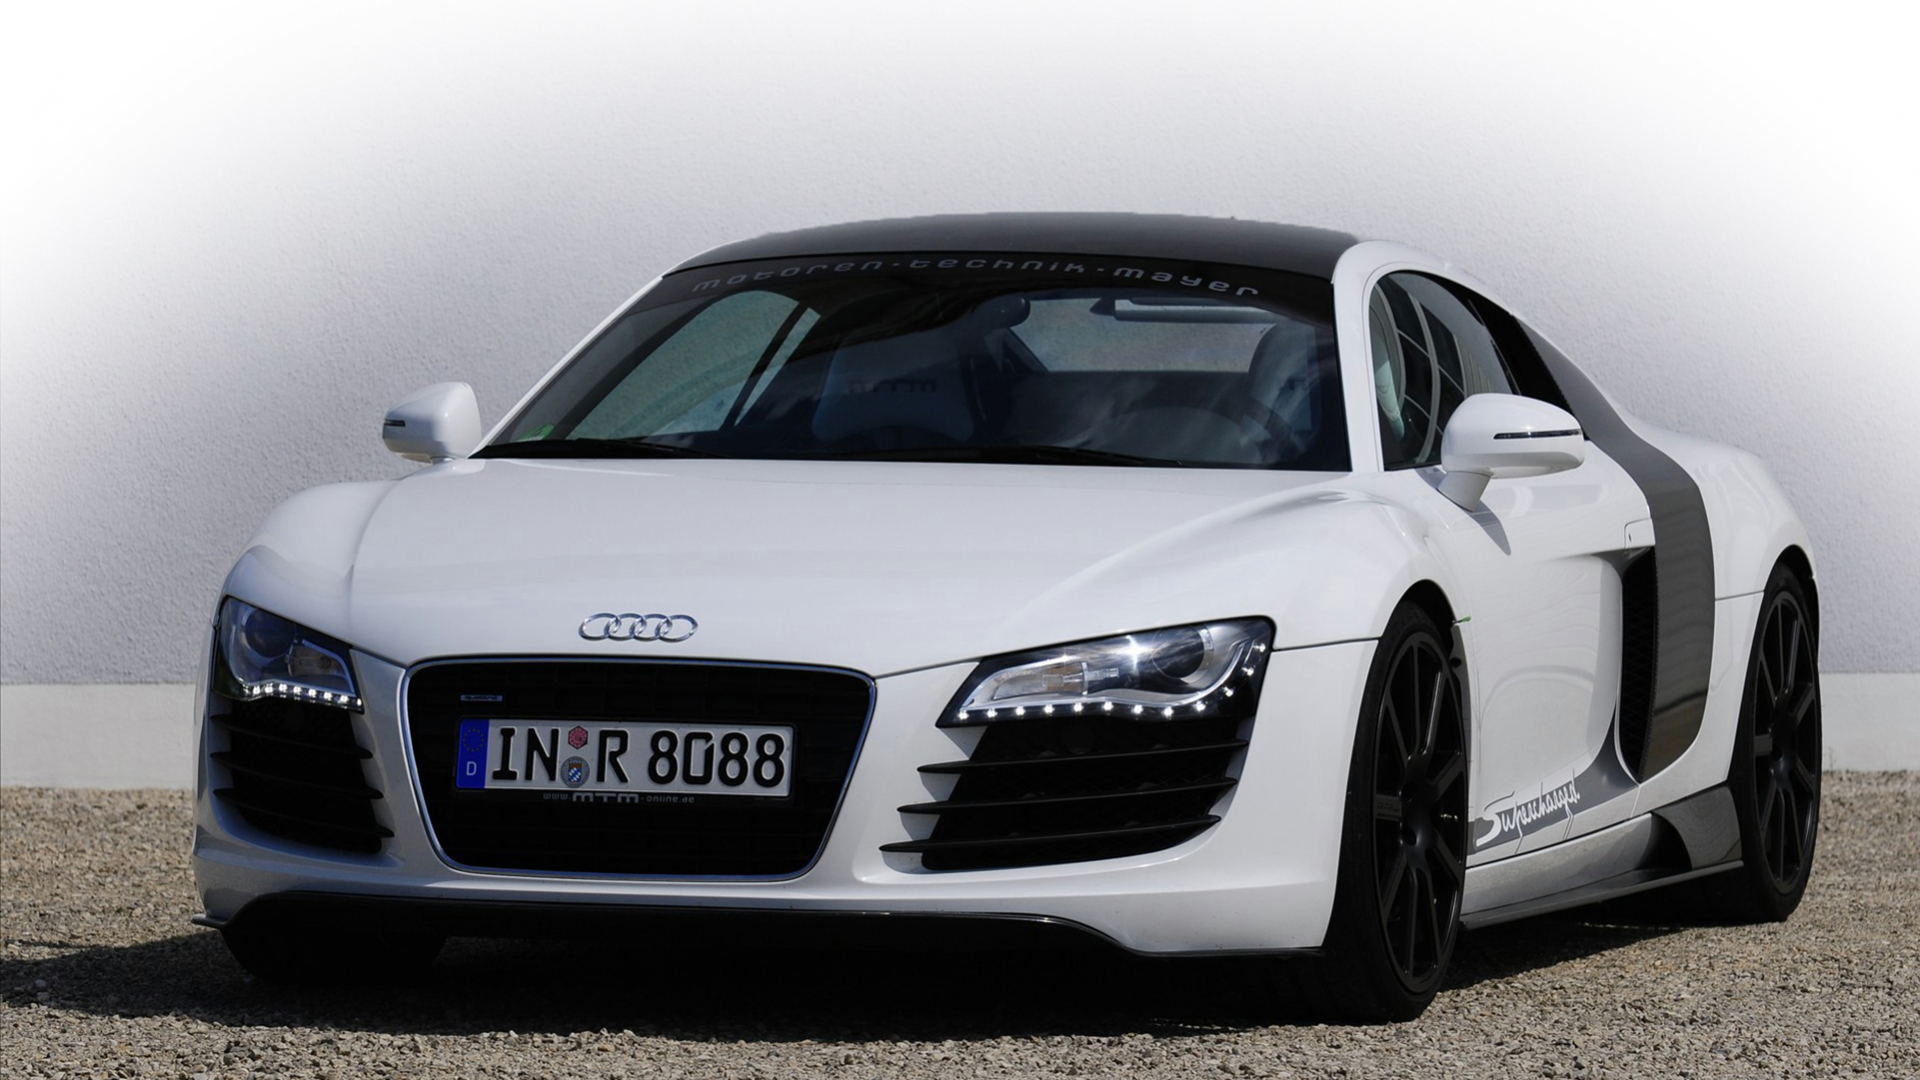 Free Download Audi R8 Wallpaper Iphone Image 406 1921x1200 For